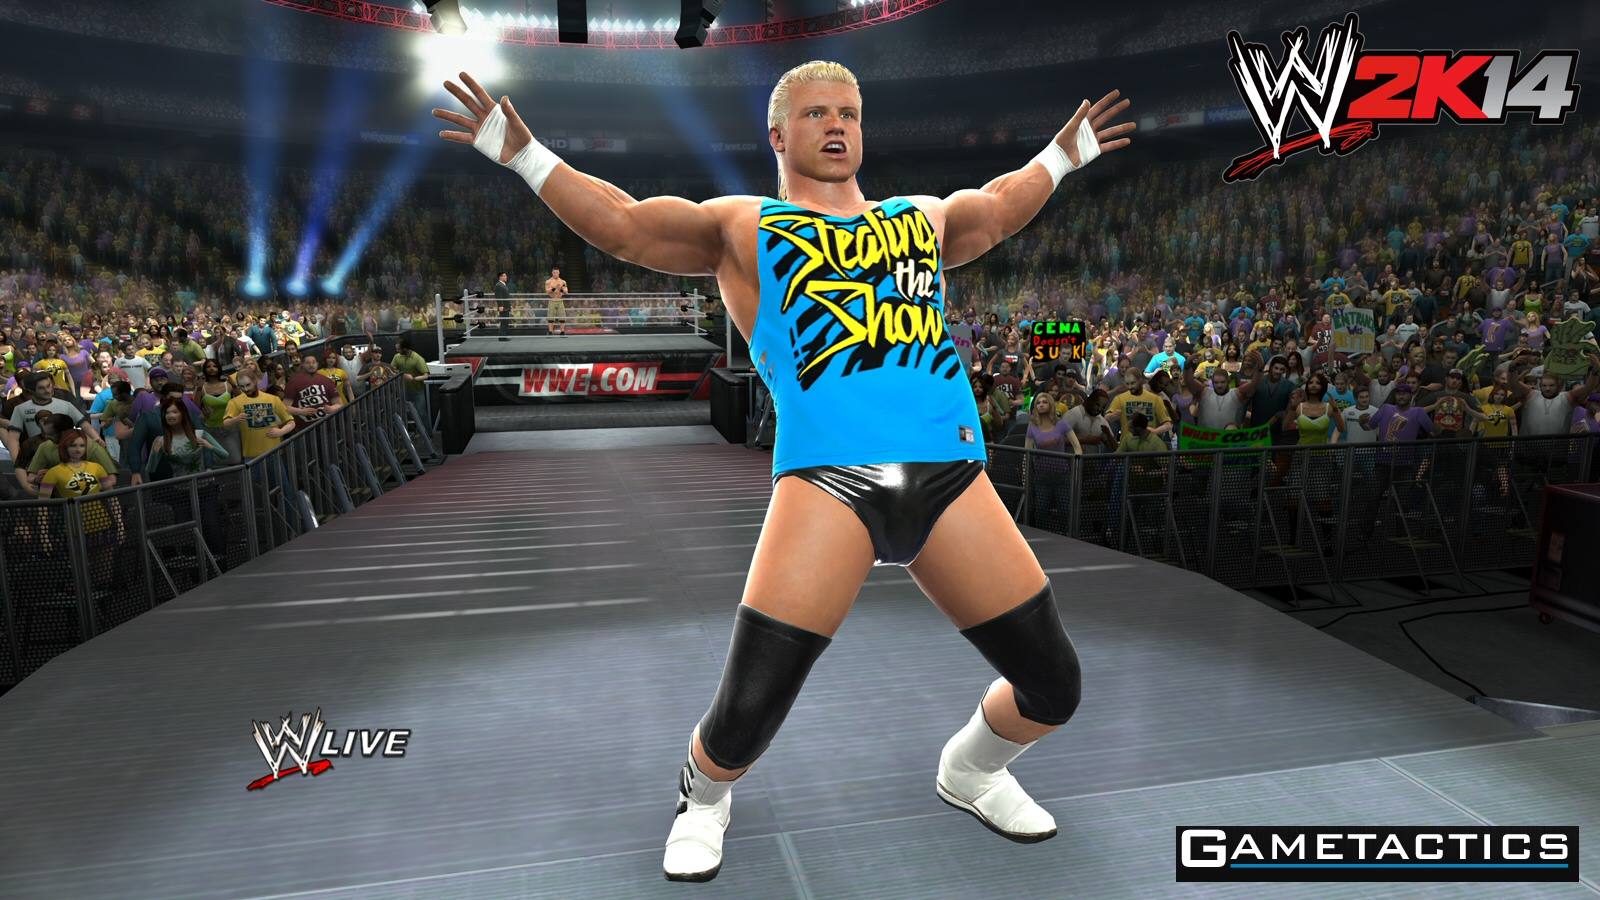 Wwe 2k13 pc game free download icvegalo4sj.